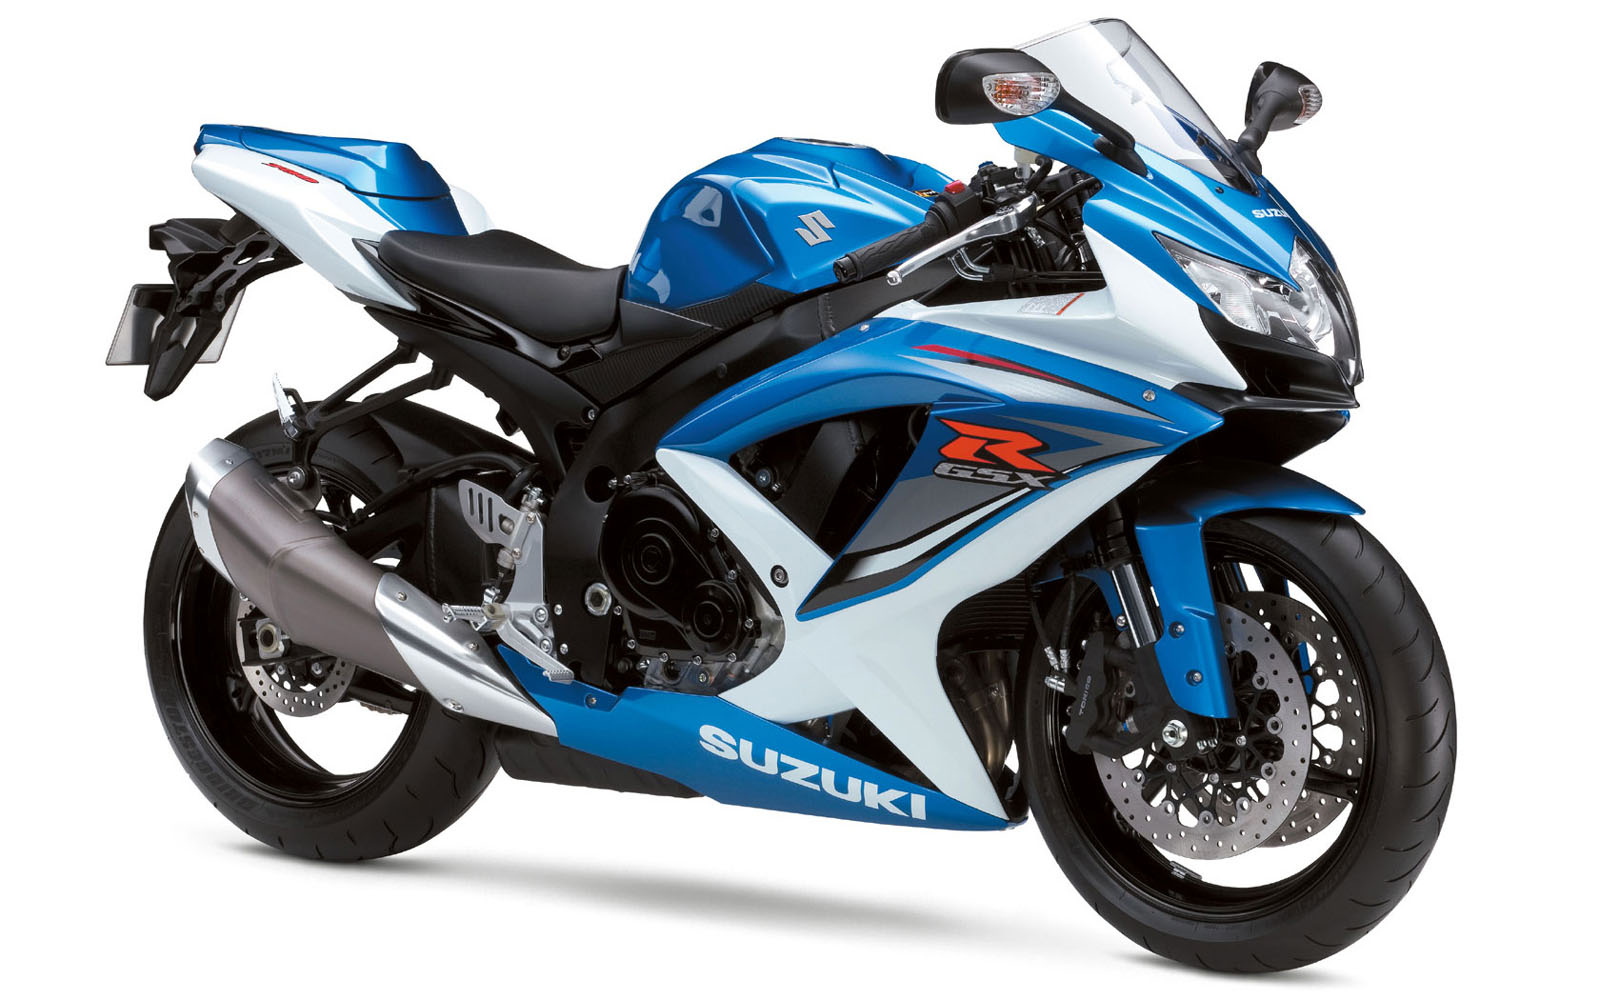 Tag Suzuki GSX R 600 Wallpapers Backgrounds PhotosImages and 1600x1000